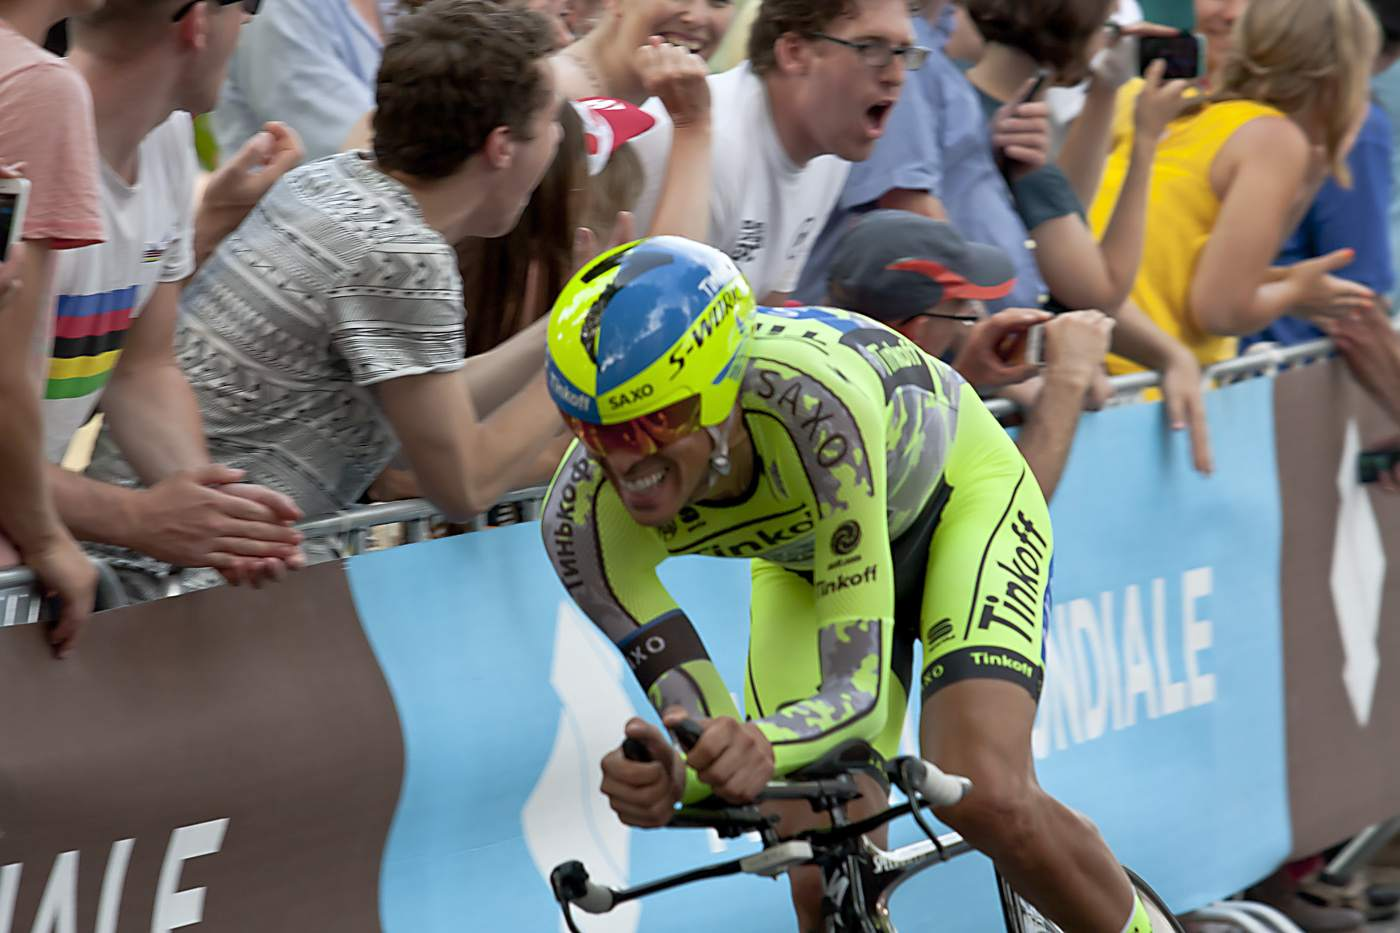 tour france 2015 pictures12 Tour de France 2015 in Pictures